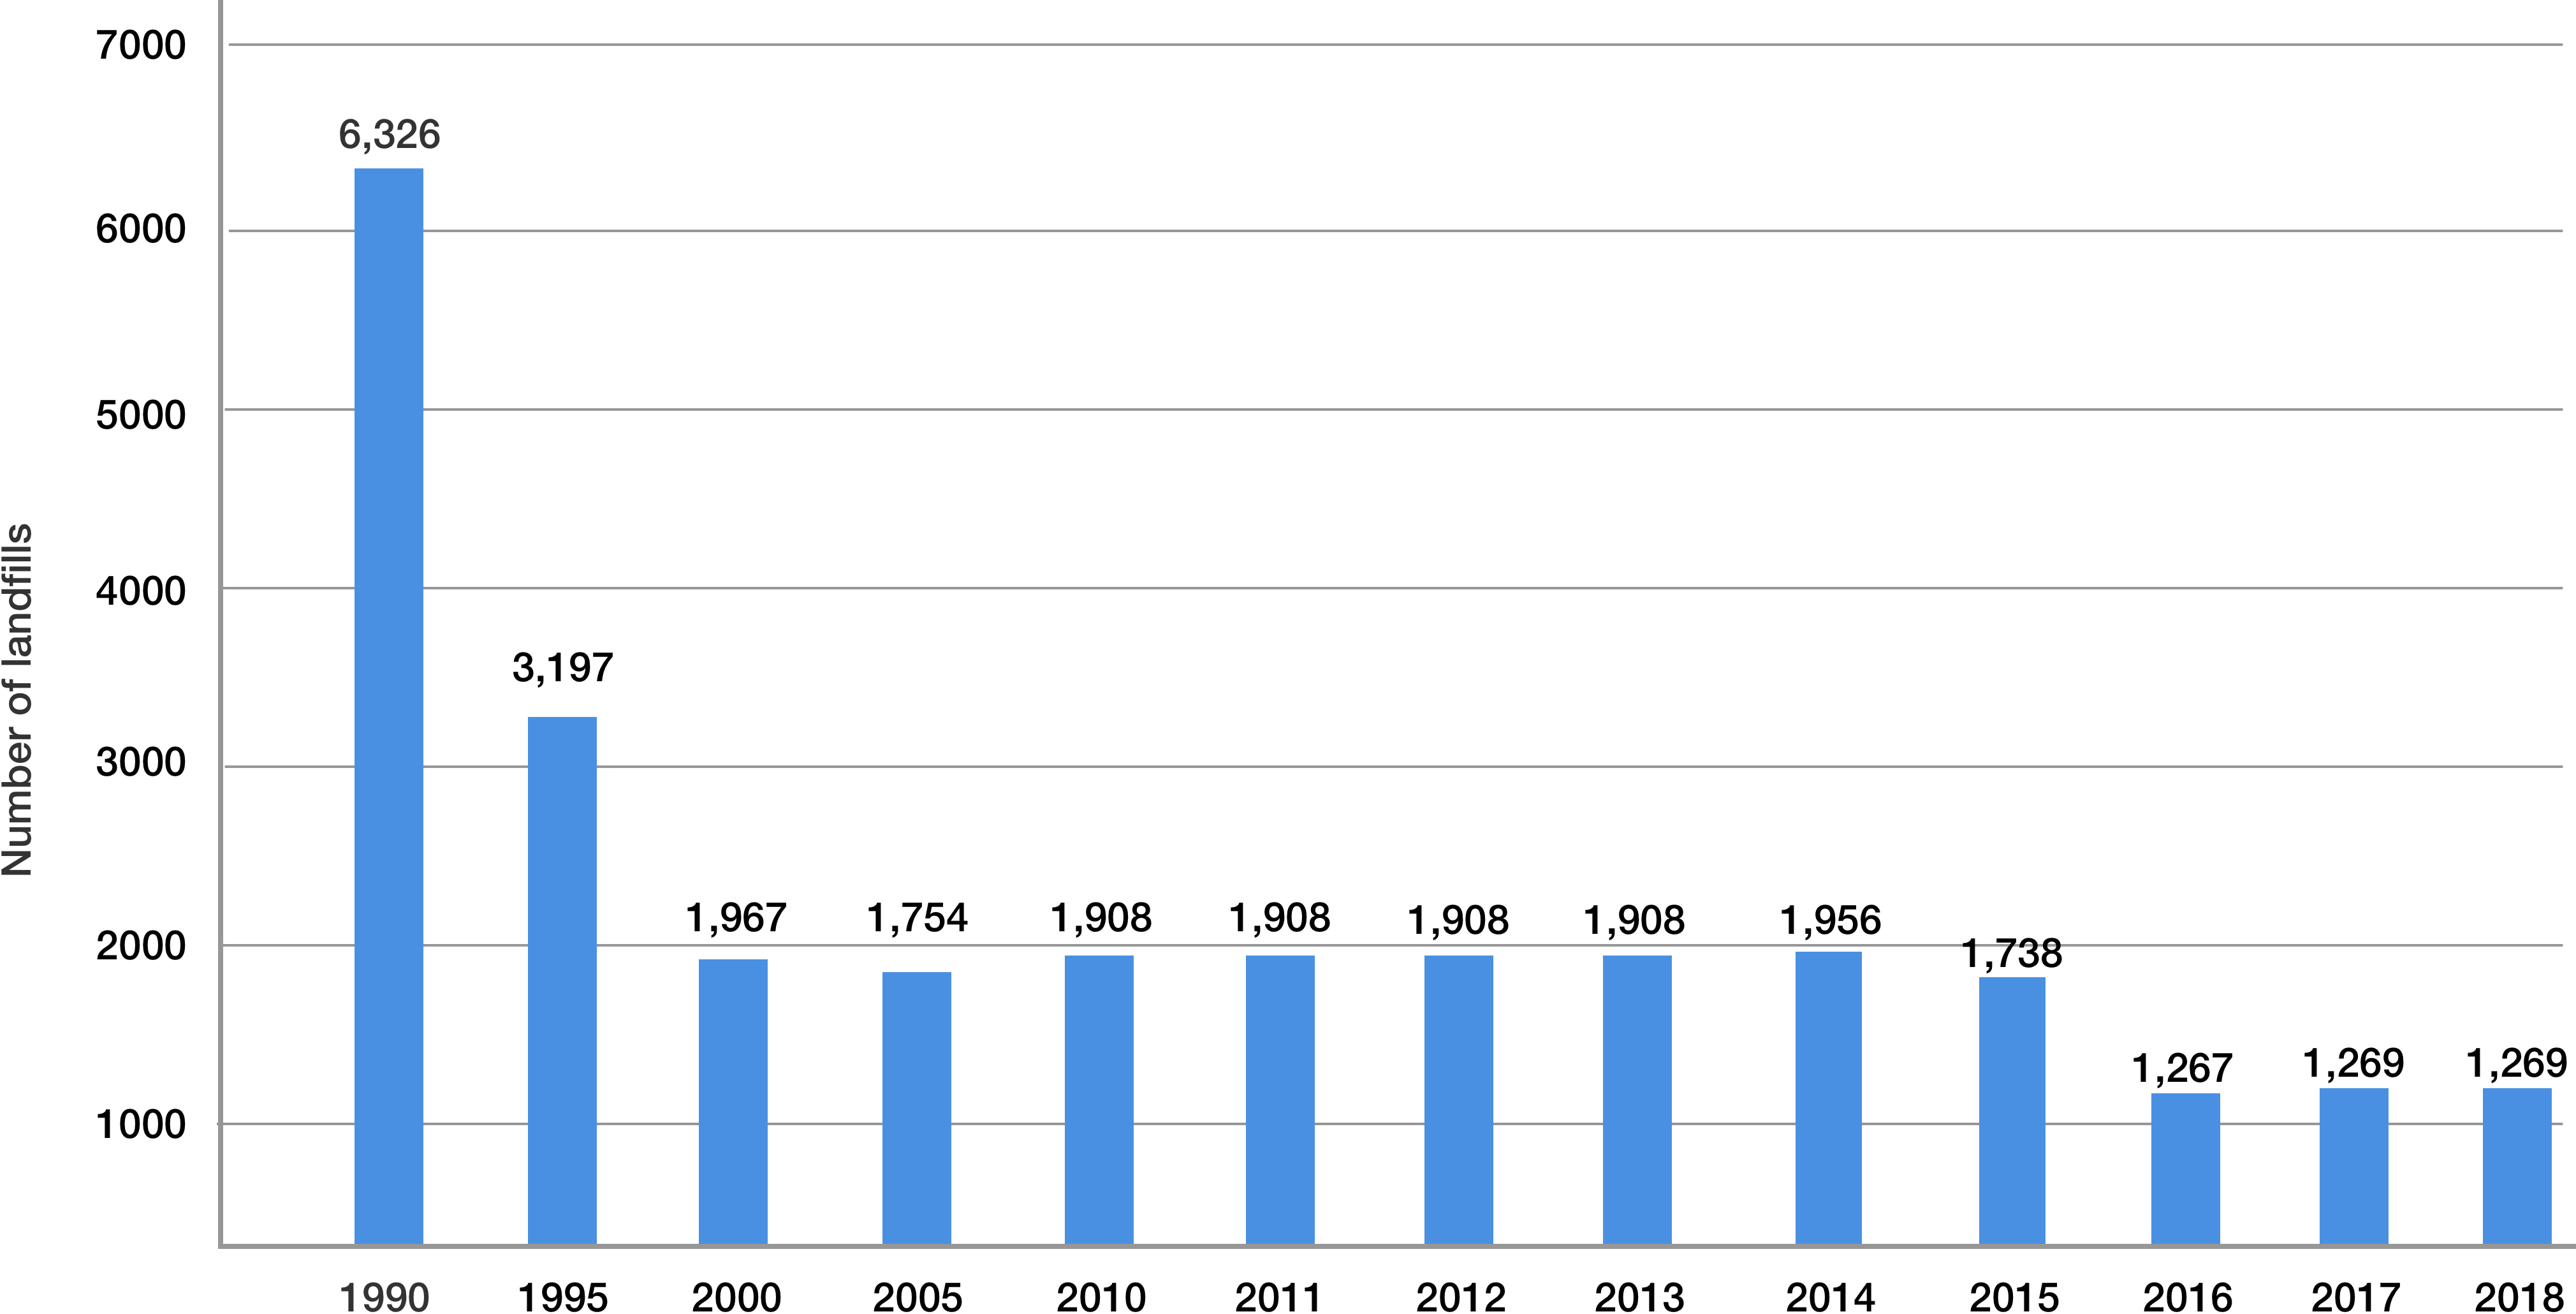 Number of landfills in the US 1990 to 2018